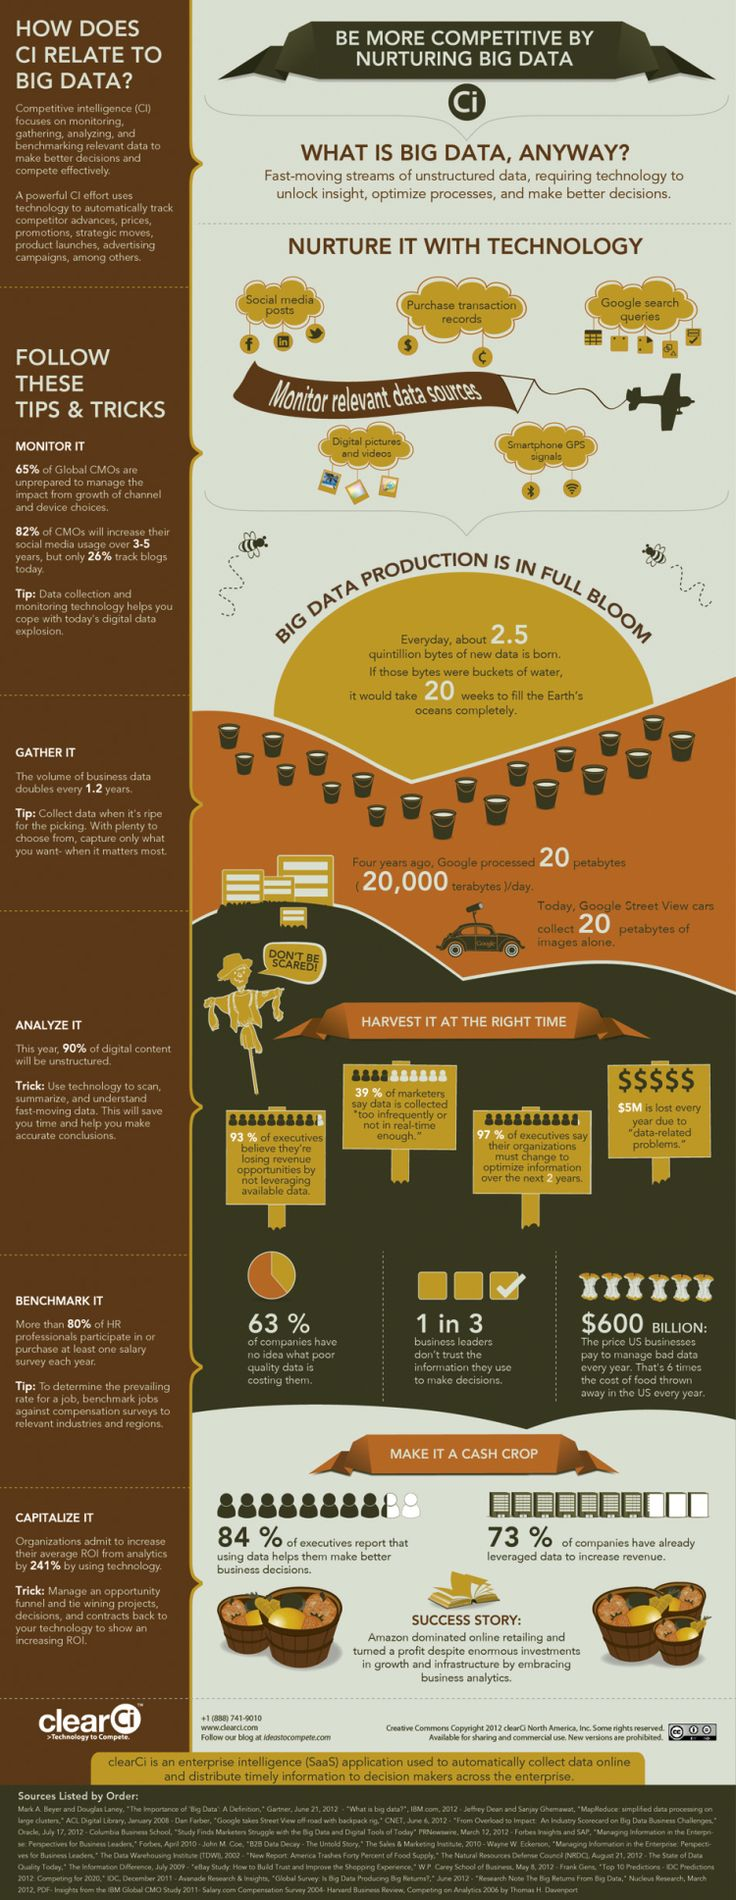 Be More Competitive By Nurturing Big Data #infographic #BigData #Business